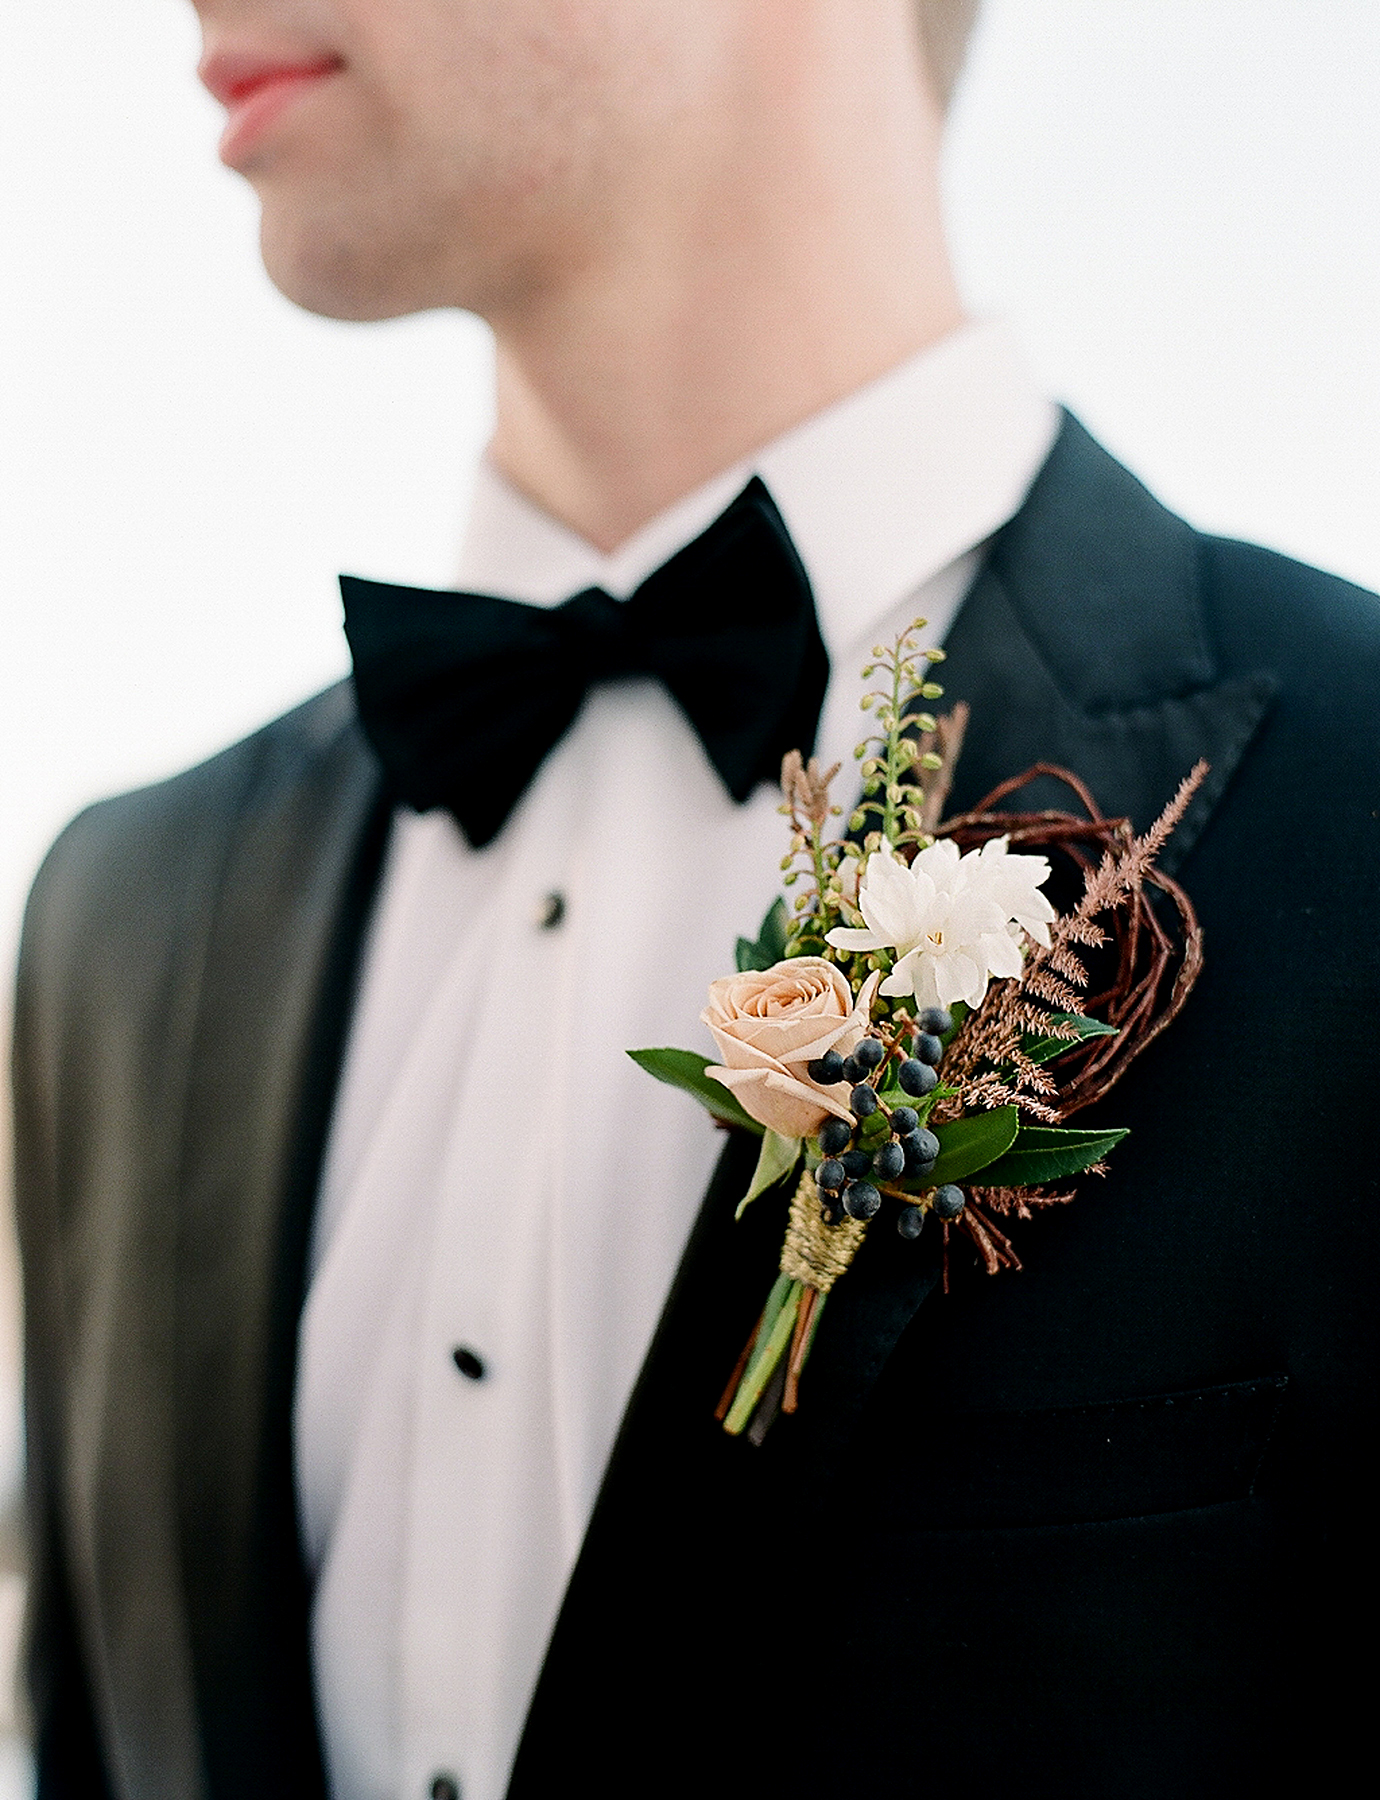 The Same Goes for the Boutonnières